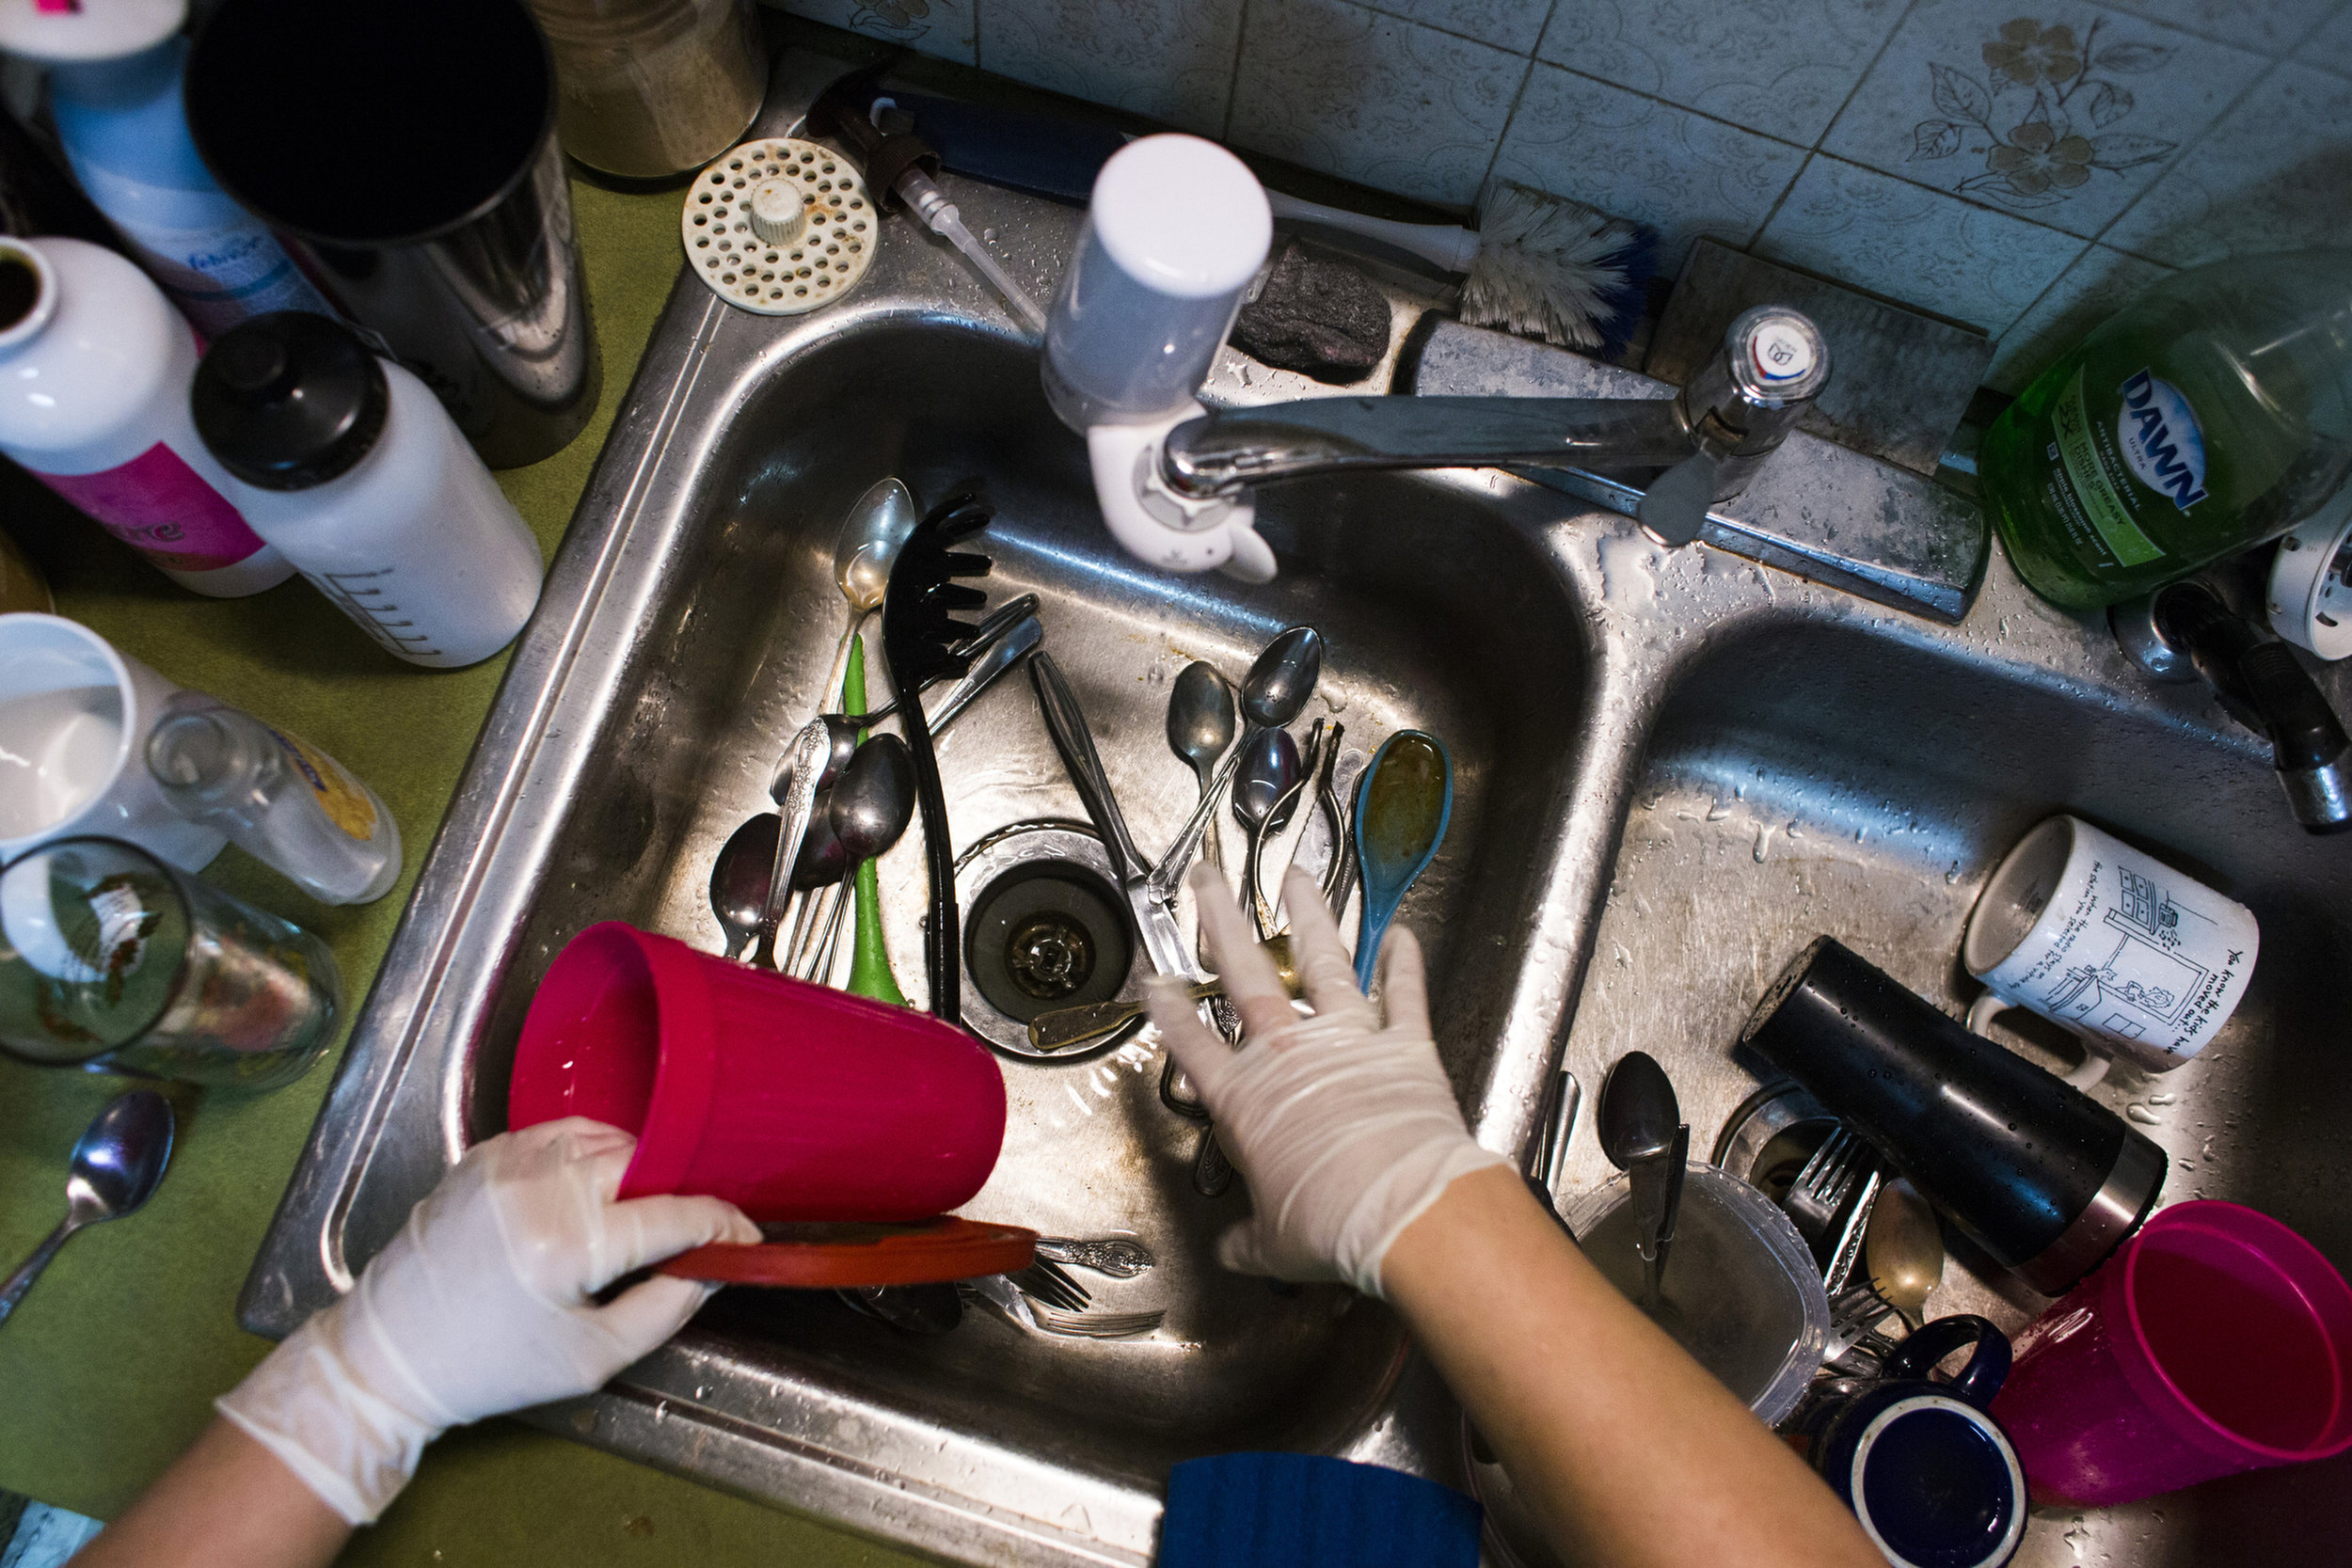 Keri Webber, of Flint, Mich., washes dishes using surgical gloves for protection on January 7, 2016. Although city officials had declared the water safe to bathe in and wash with, Webber felt she should limit her exposure as much as possible and is still distrustful of remarks made by the city.